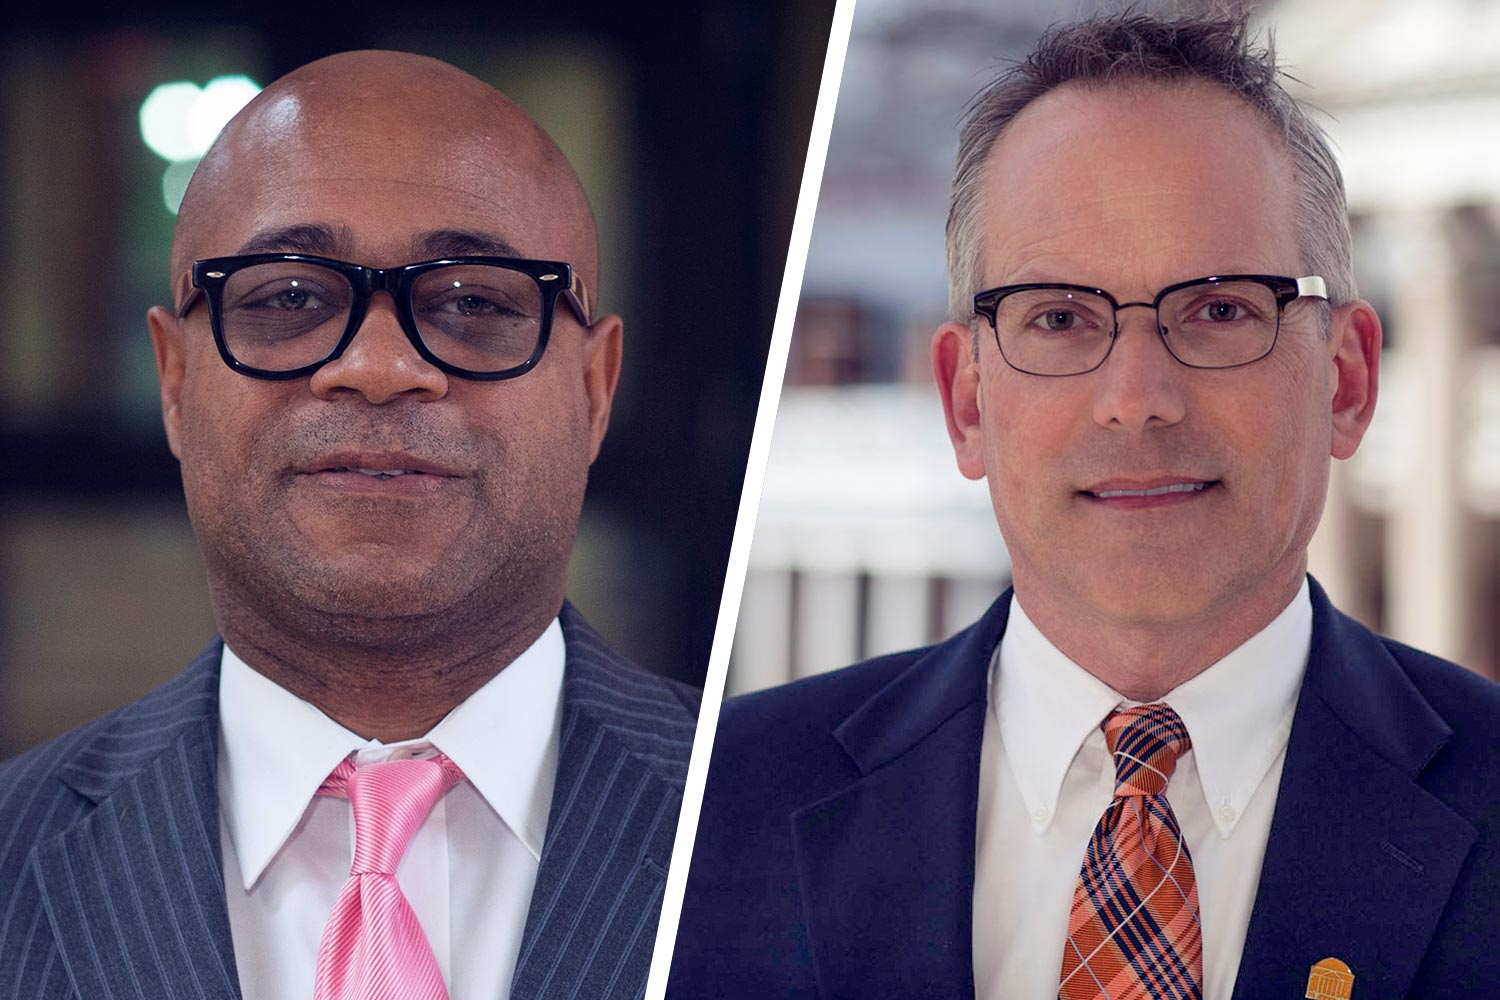 Curry School professor Derrick Alridge, left, and Assistant Vice President for Compliance Gary Nimax are the winners of the 2018 John T. Casteen III Diversity-Equity-Inclusion Leadership Awards.